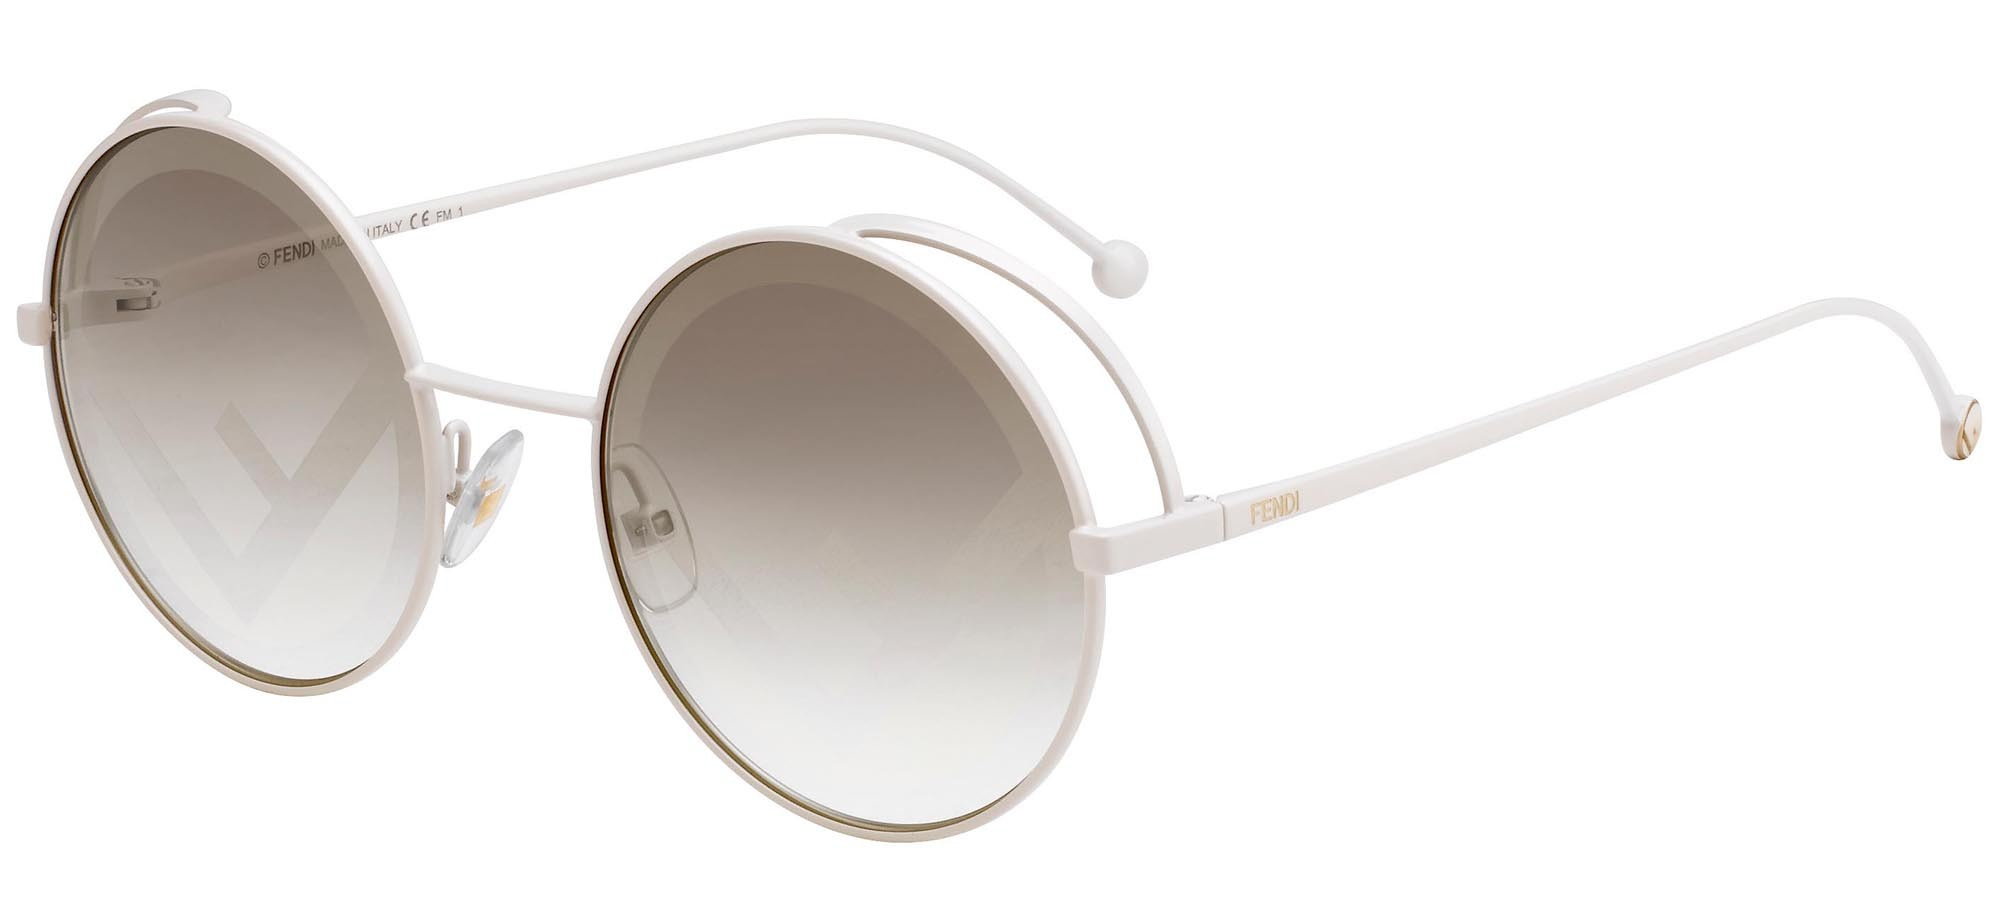 Fendi sunglasses FENDIRAMA FF 0343/S